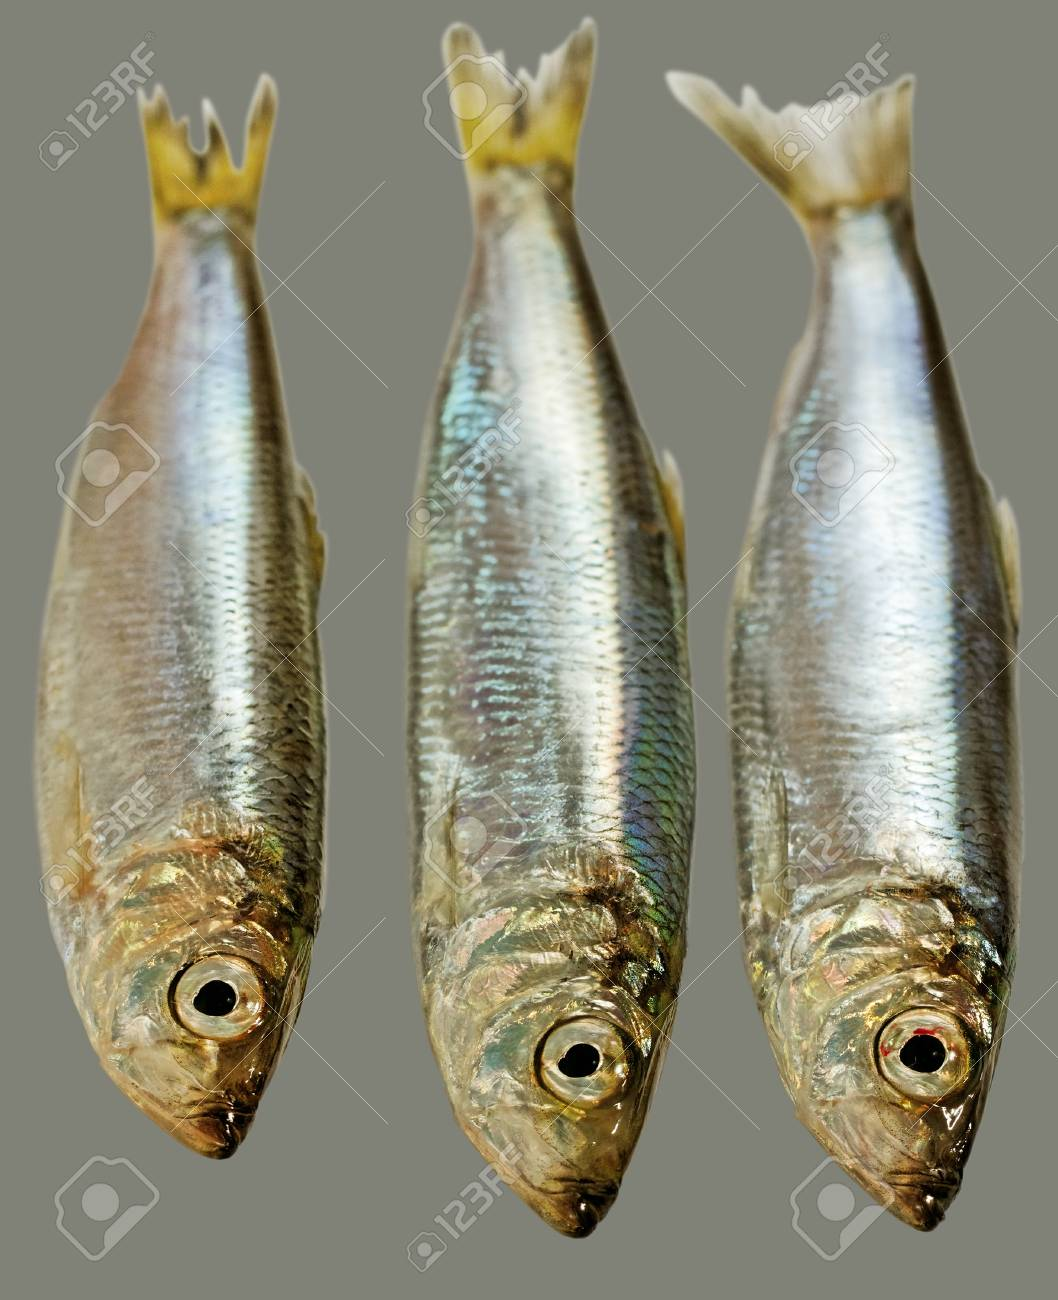 Three Baltic herrings isolated on grey surface Stock Photo - 16997338